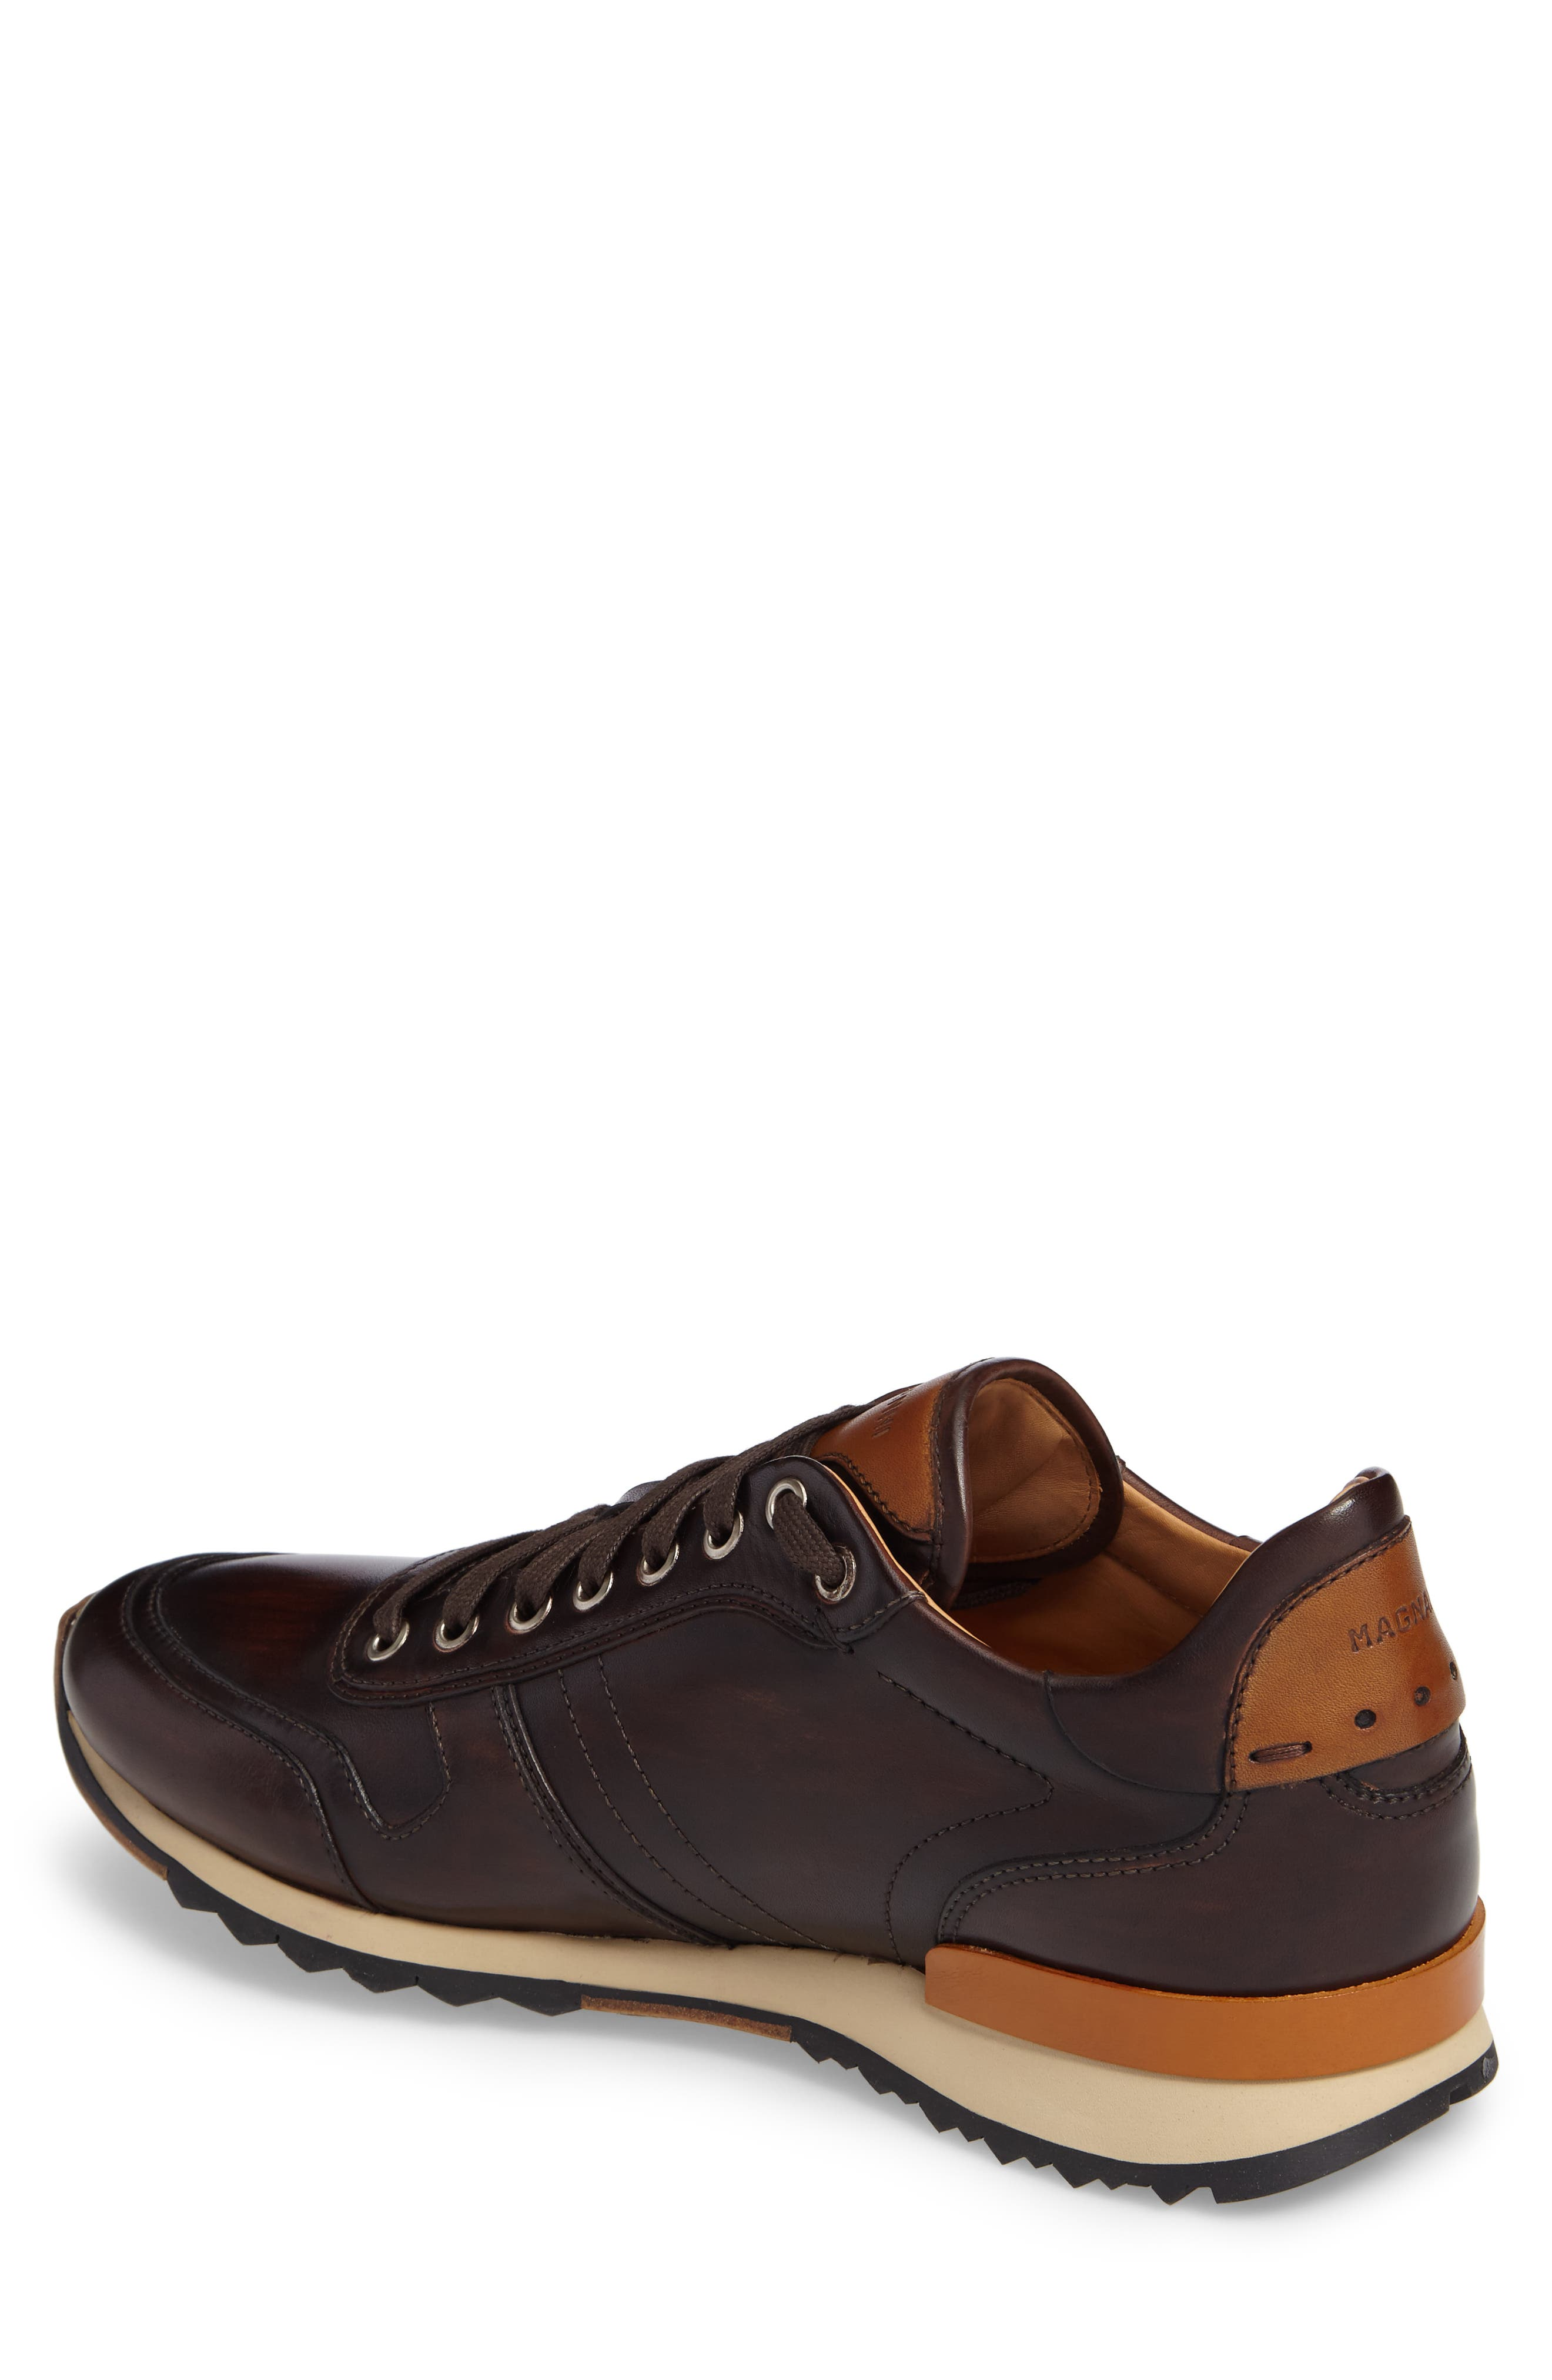 Galio Sneaker,                             Alternate thumbnail 2, color,                             Brown Leather